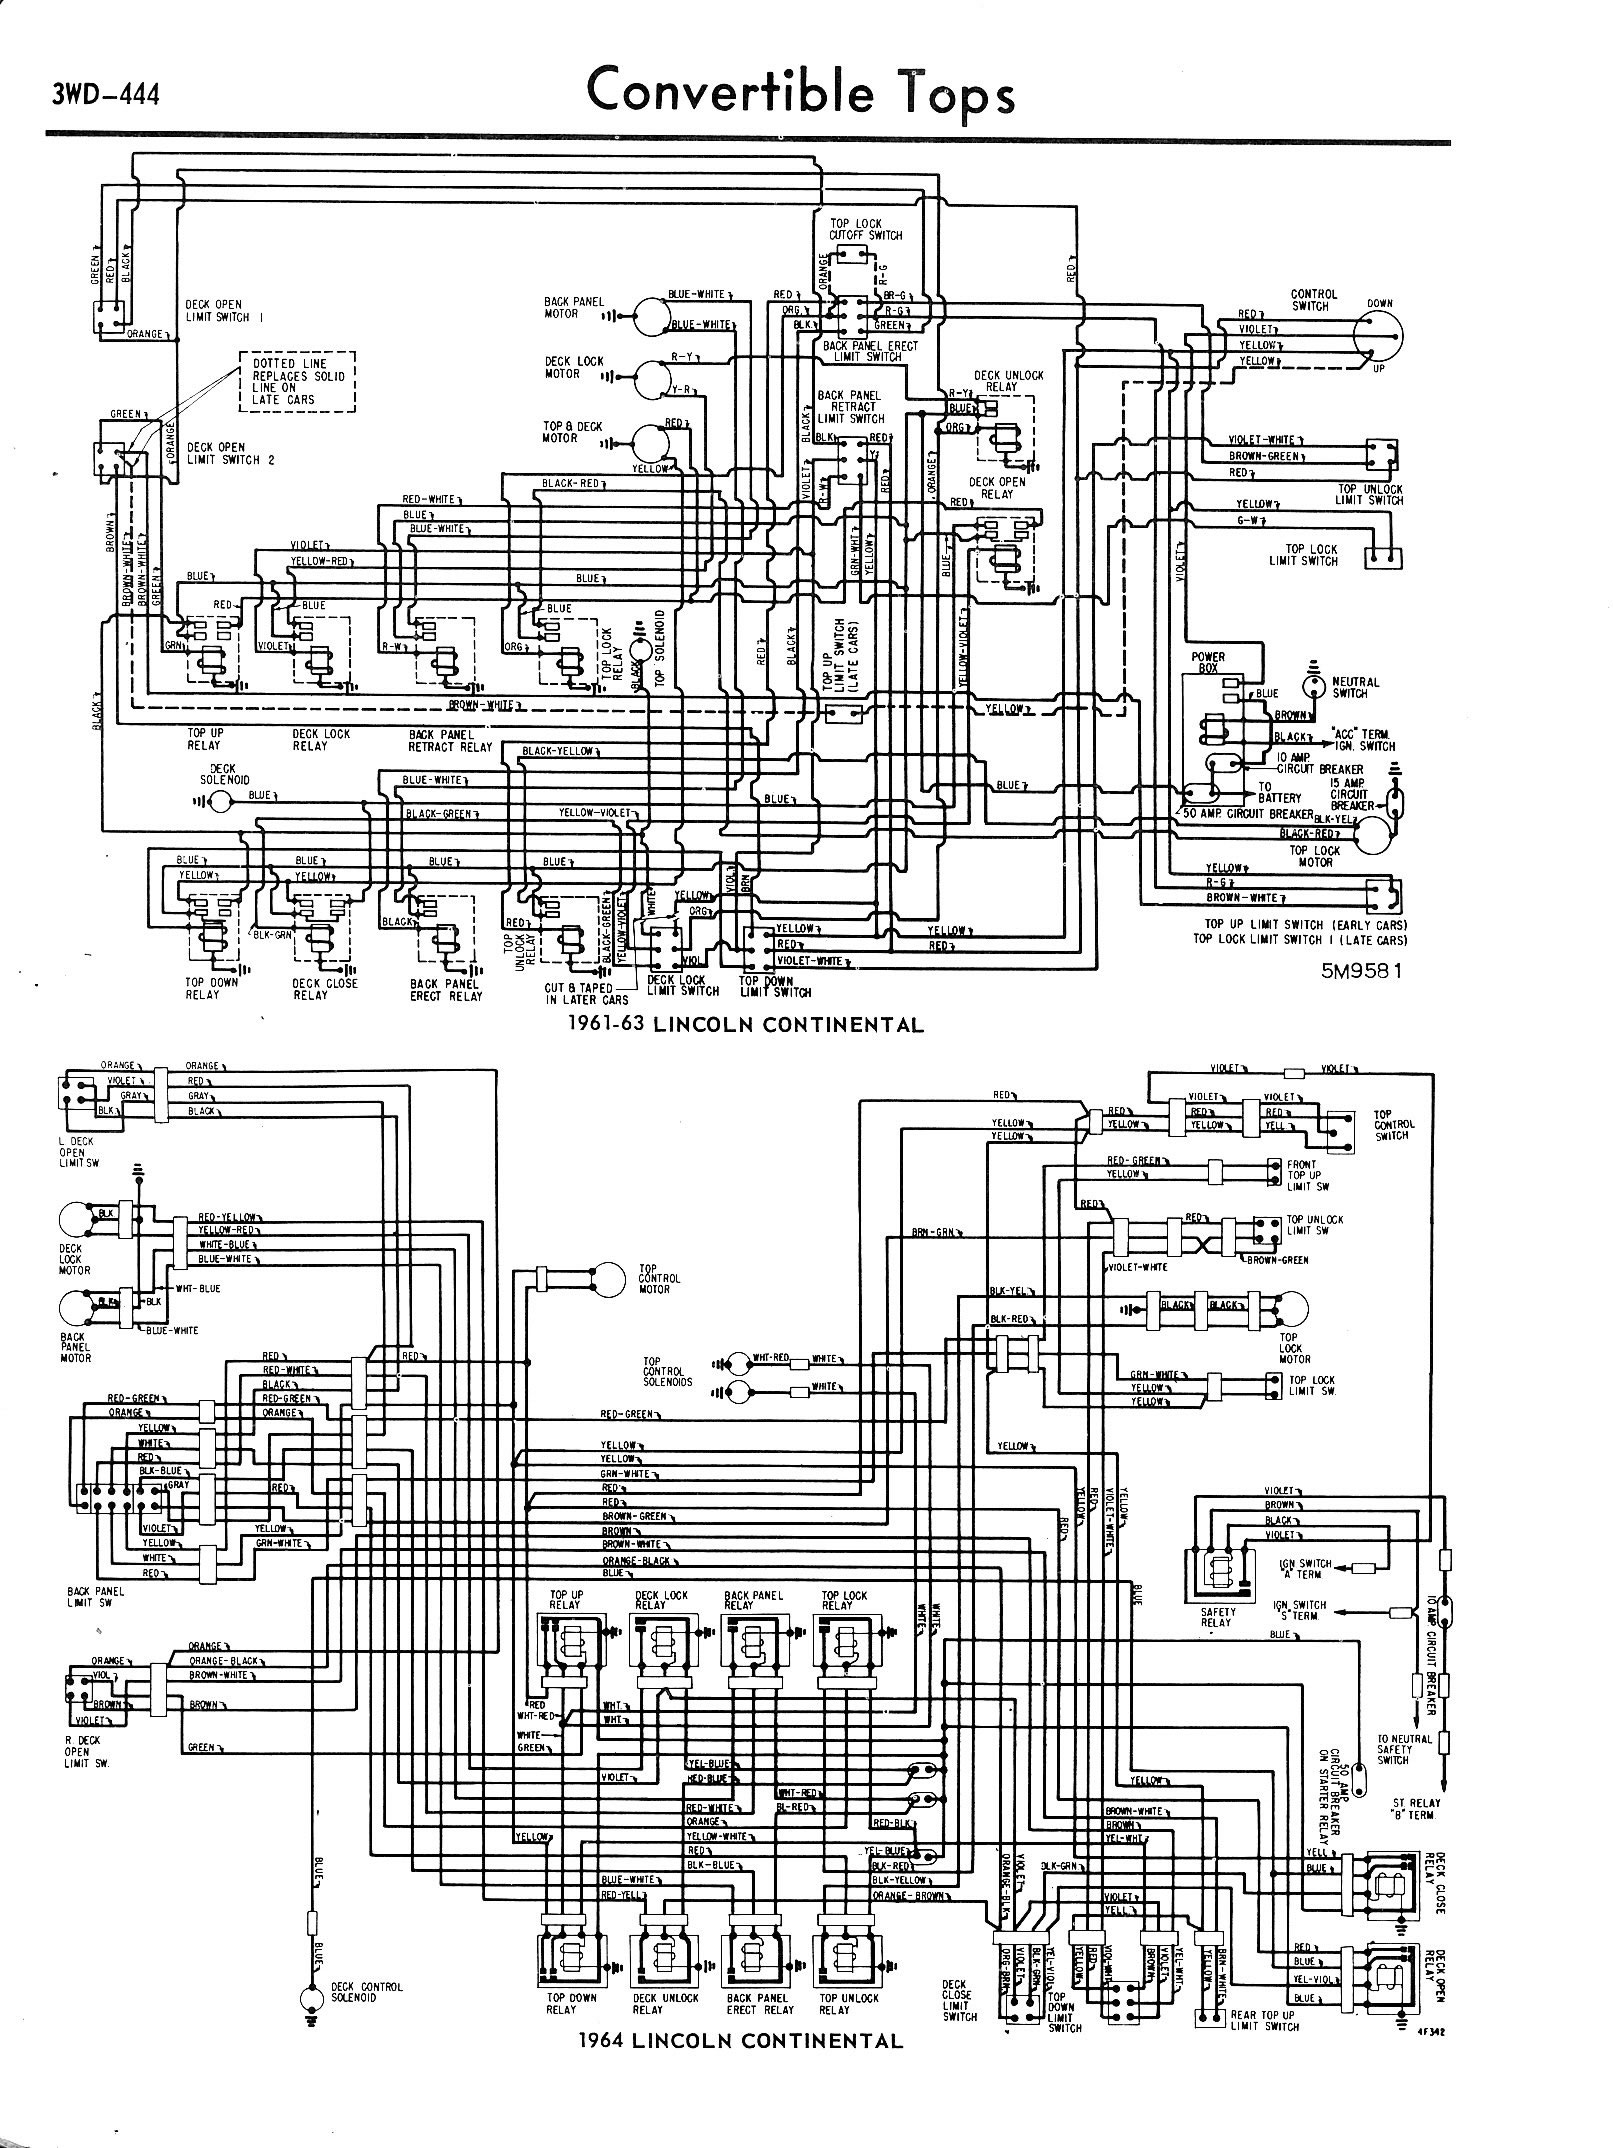 1997 ford thunderbird wiring diagram 3 way switch multiple lights uk 1966 library 63 voltage regulator simple electrical system 1972